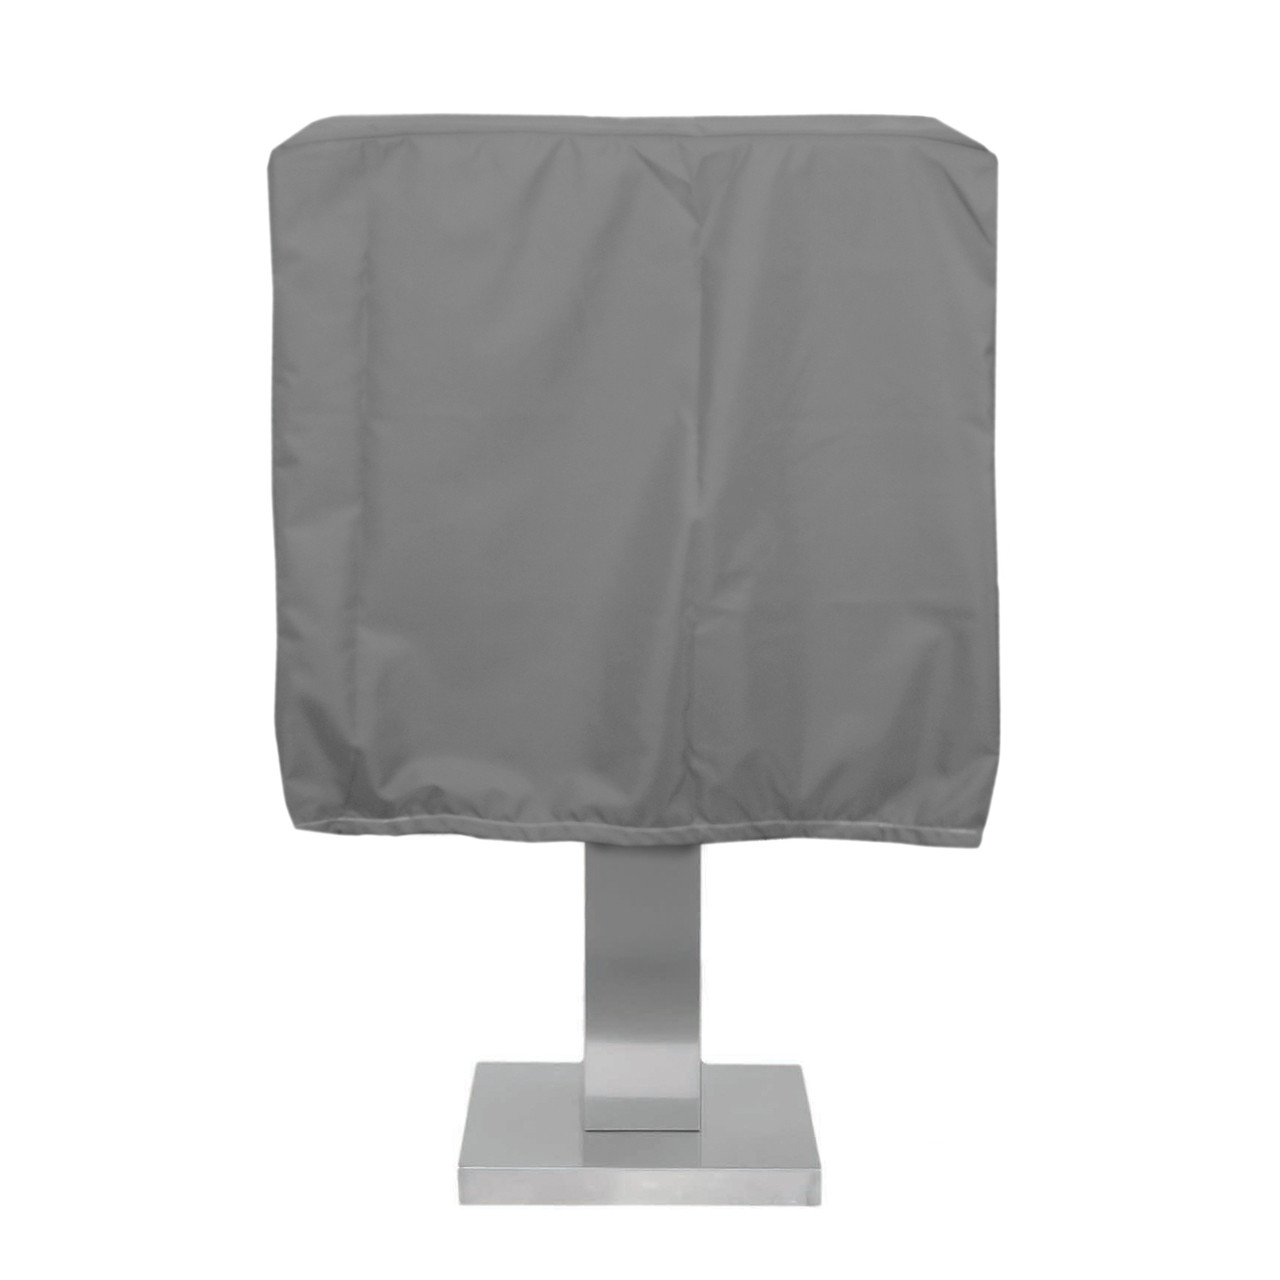 Outdoor Covers Pedestal Grill Cover Outdoor Furniture Covers